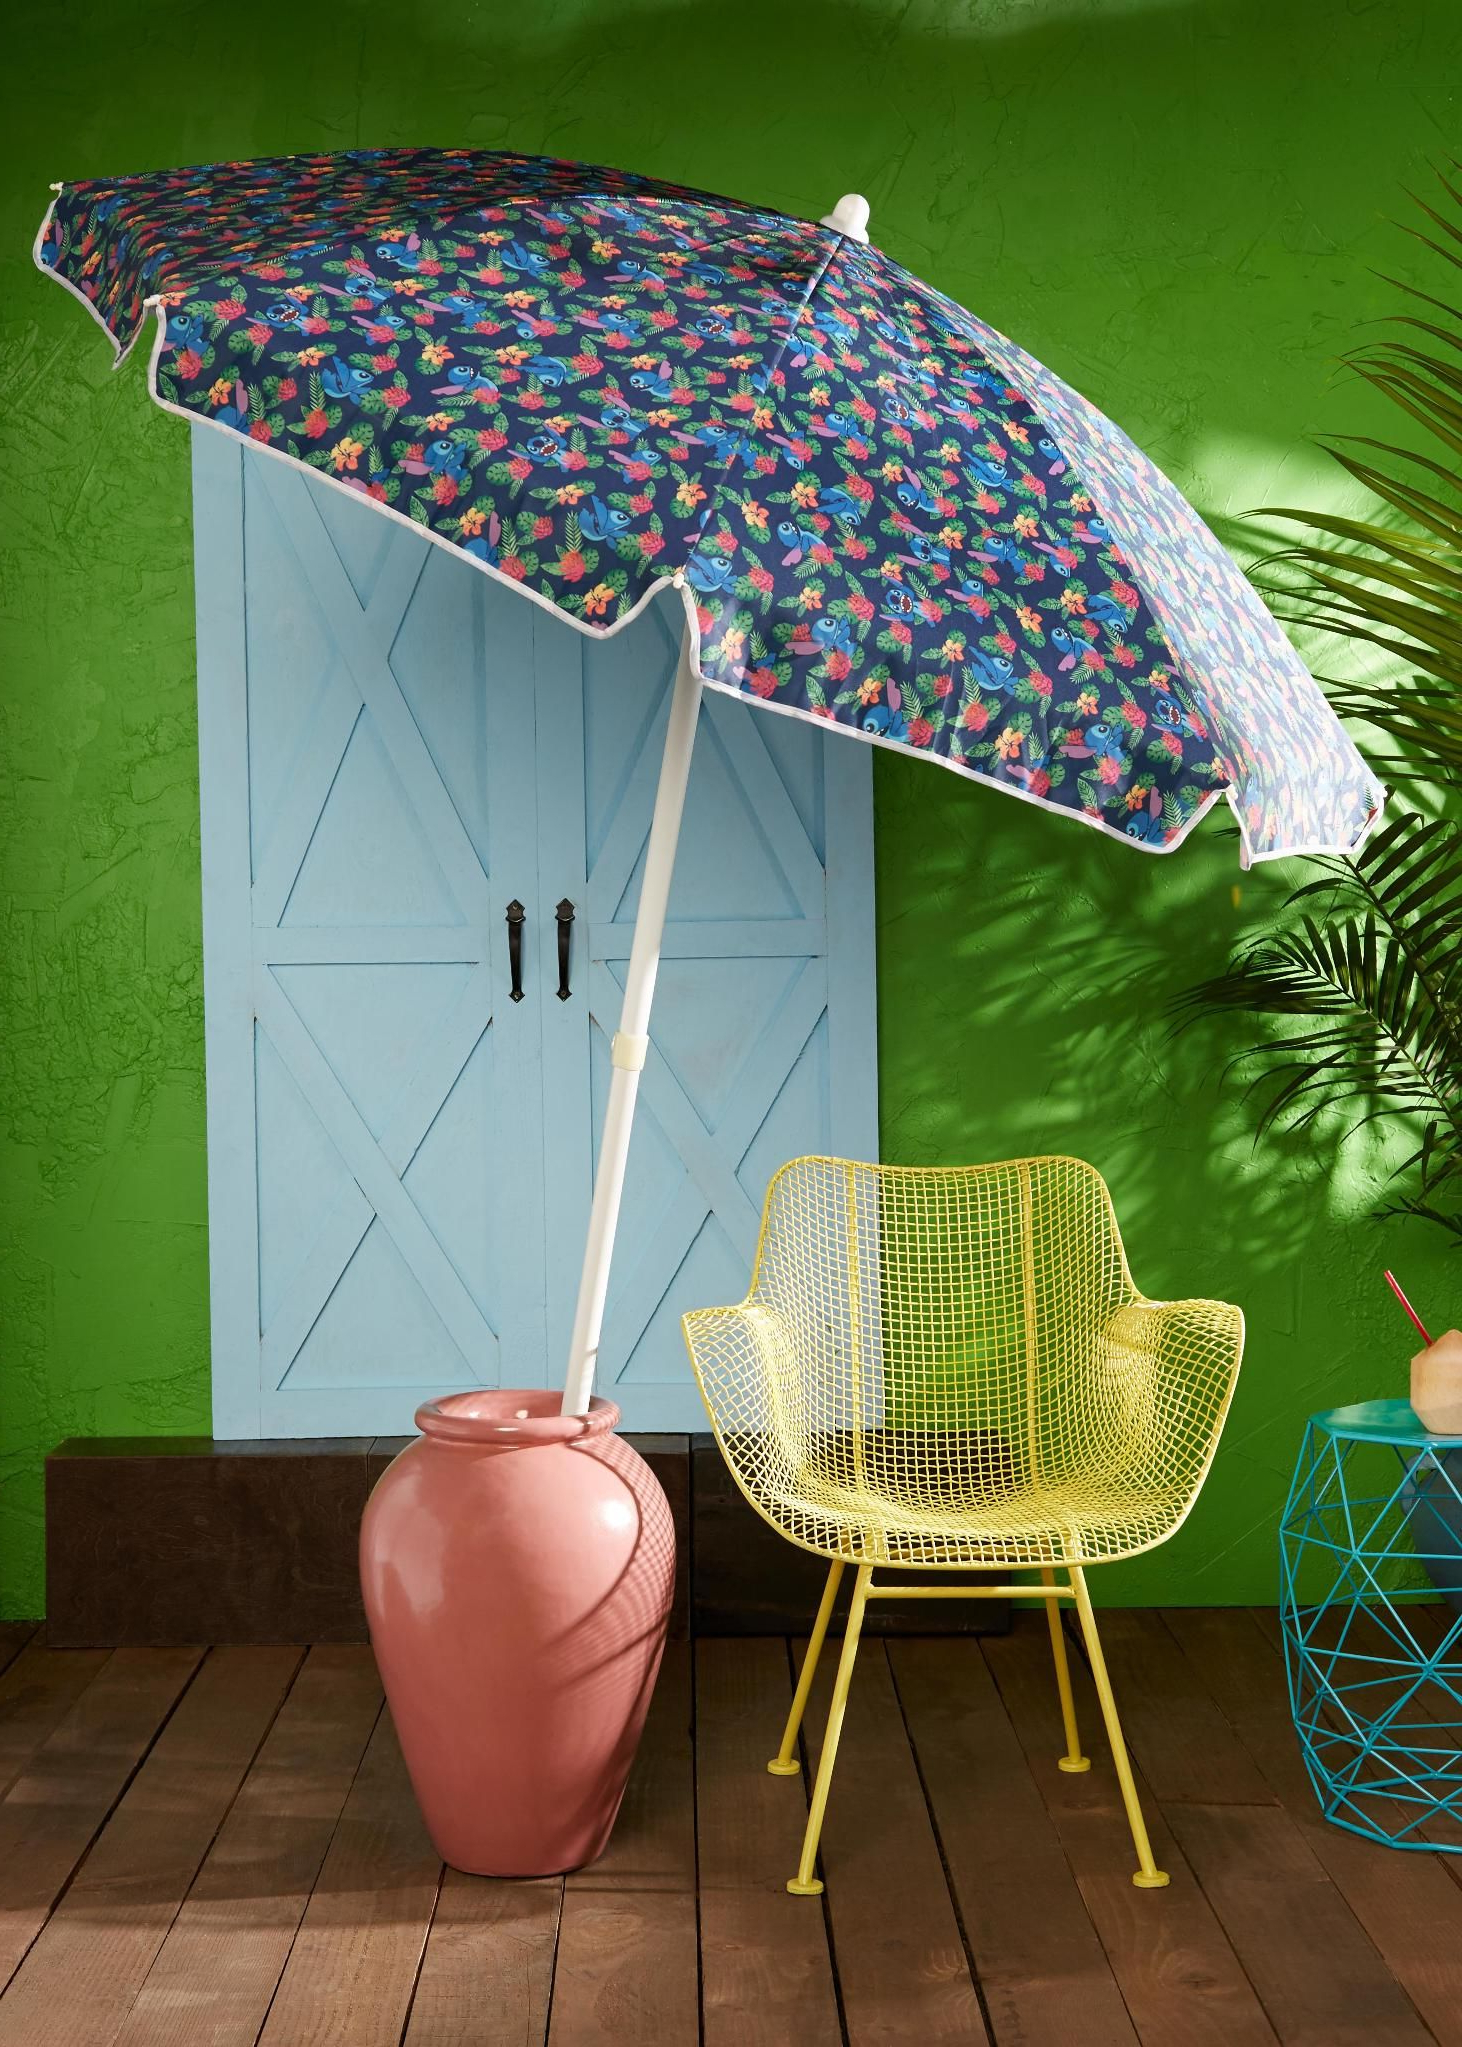 Most Recent Disney Lilo & Stitch Beach Umbrella – Boxlunch Exclusive In 2019 Intended For Smithmill Beach Umbrellas (View 6 of 20)